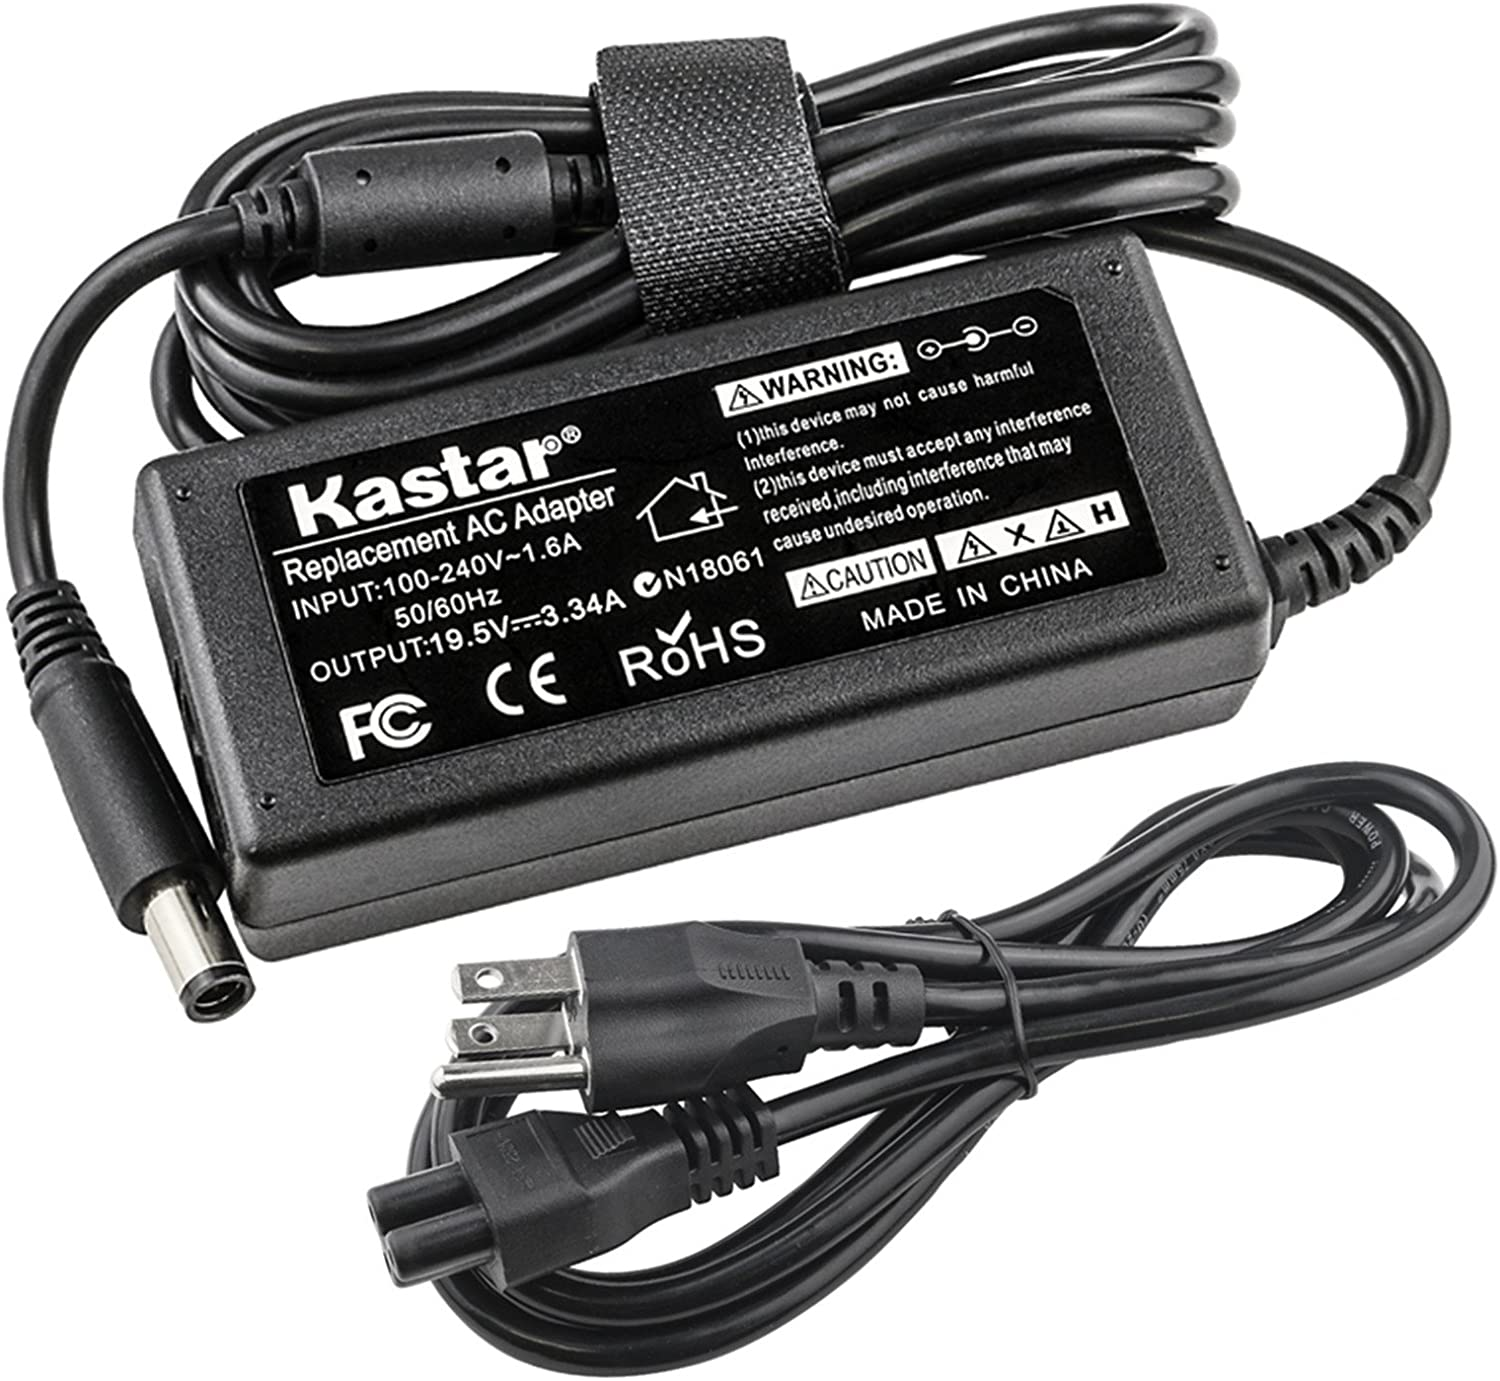 Kastar Replacement AC Adapter for PA-12 Dell Laptop PA-1650-05D2 U7088 F7970 N2765 AA22850 PA-1650-05D 310-4408 1X917 310-2860 5u092 PADL012 Inspriron 300M 500M 505M 510M 600M 630M 640M 700M 710M